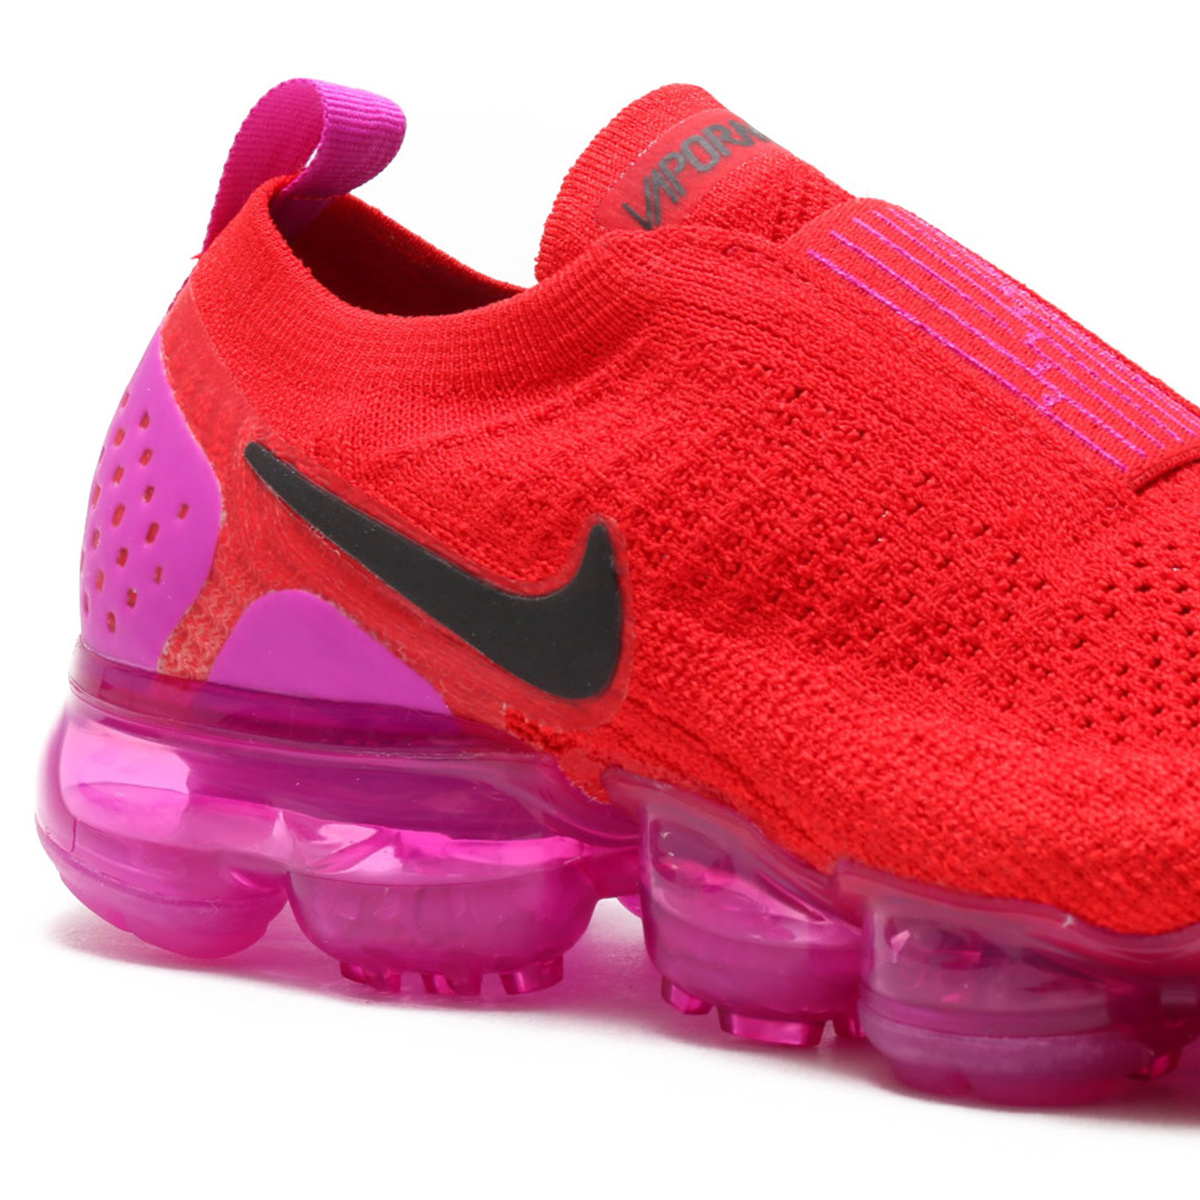 18406f5b8c8 NIKE WMNS AIR VAPORMAX FK MOC 2 (Nike women air vapor max fried food knit  mock 2) UNIVERSITY RED BLACK-FUCHSIA BLAST 18SU-S